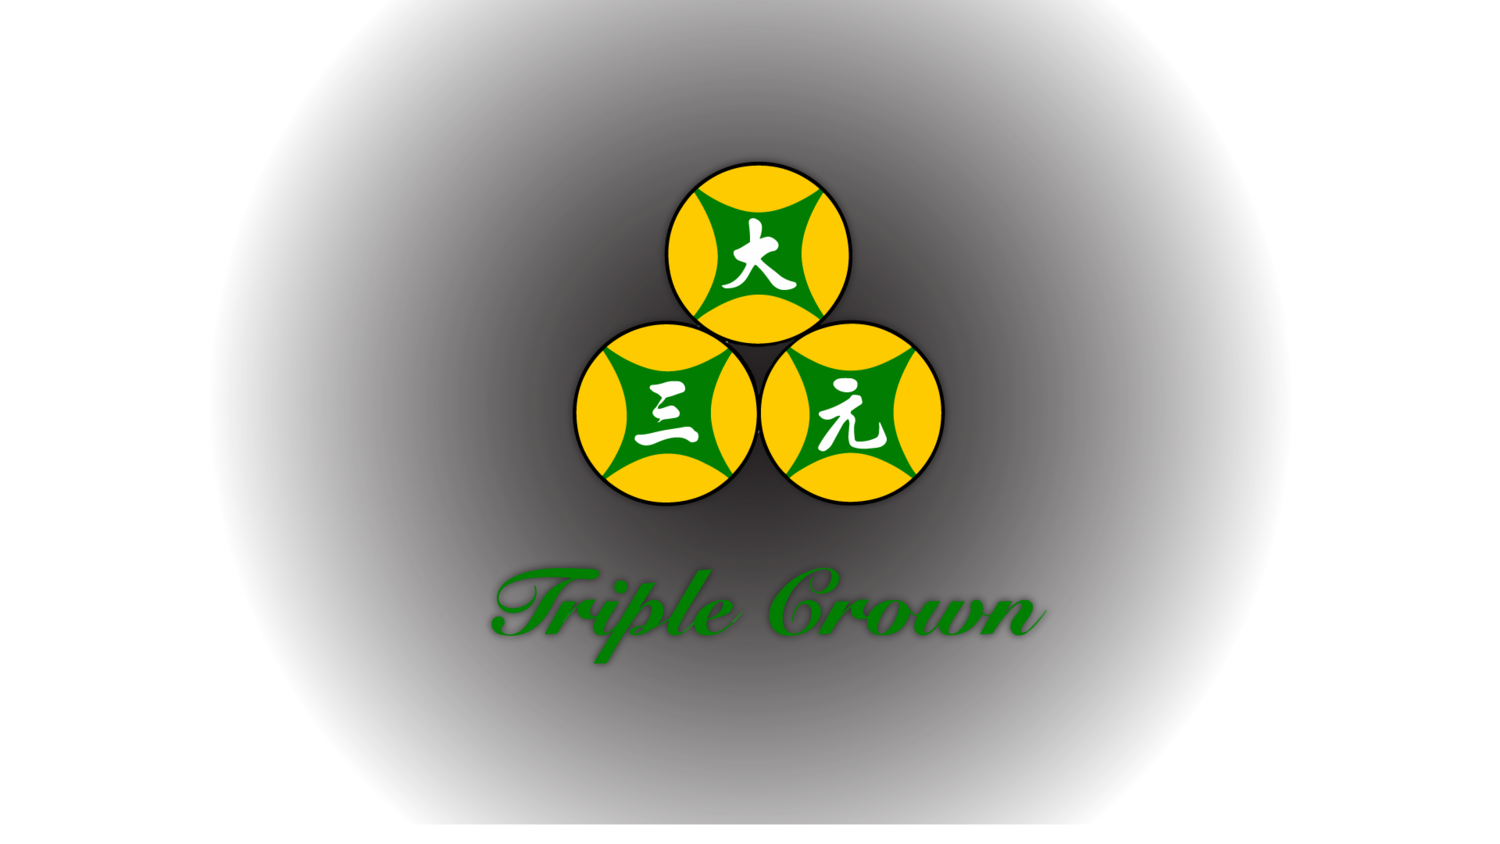 Triple Crown Chicago